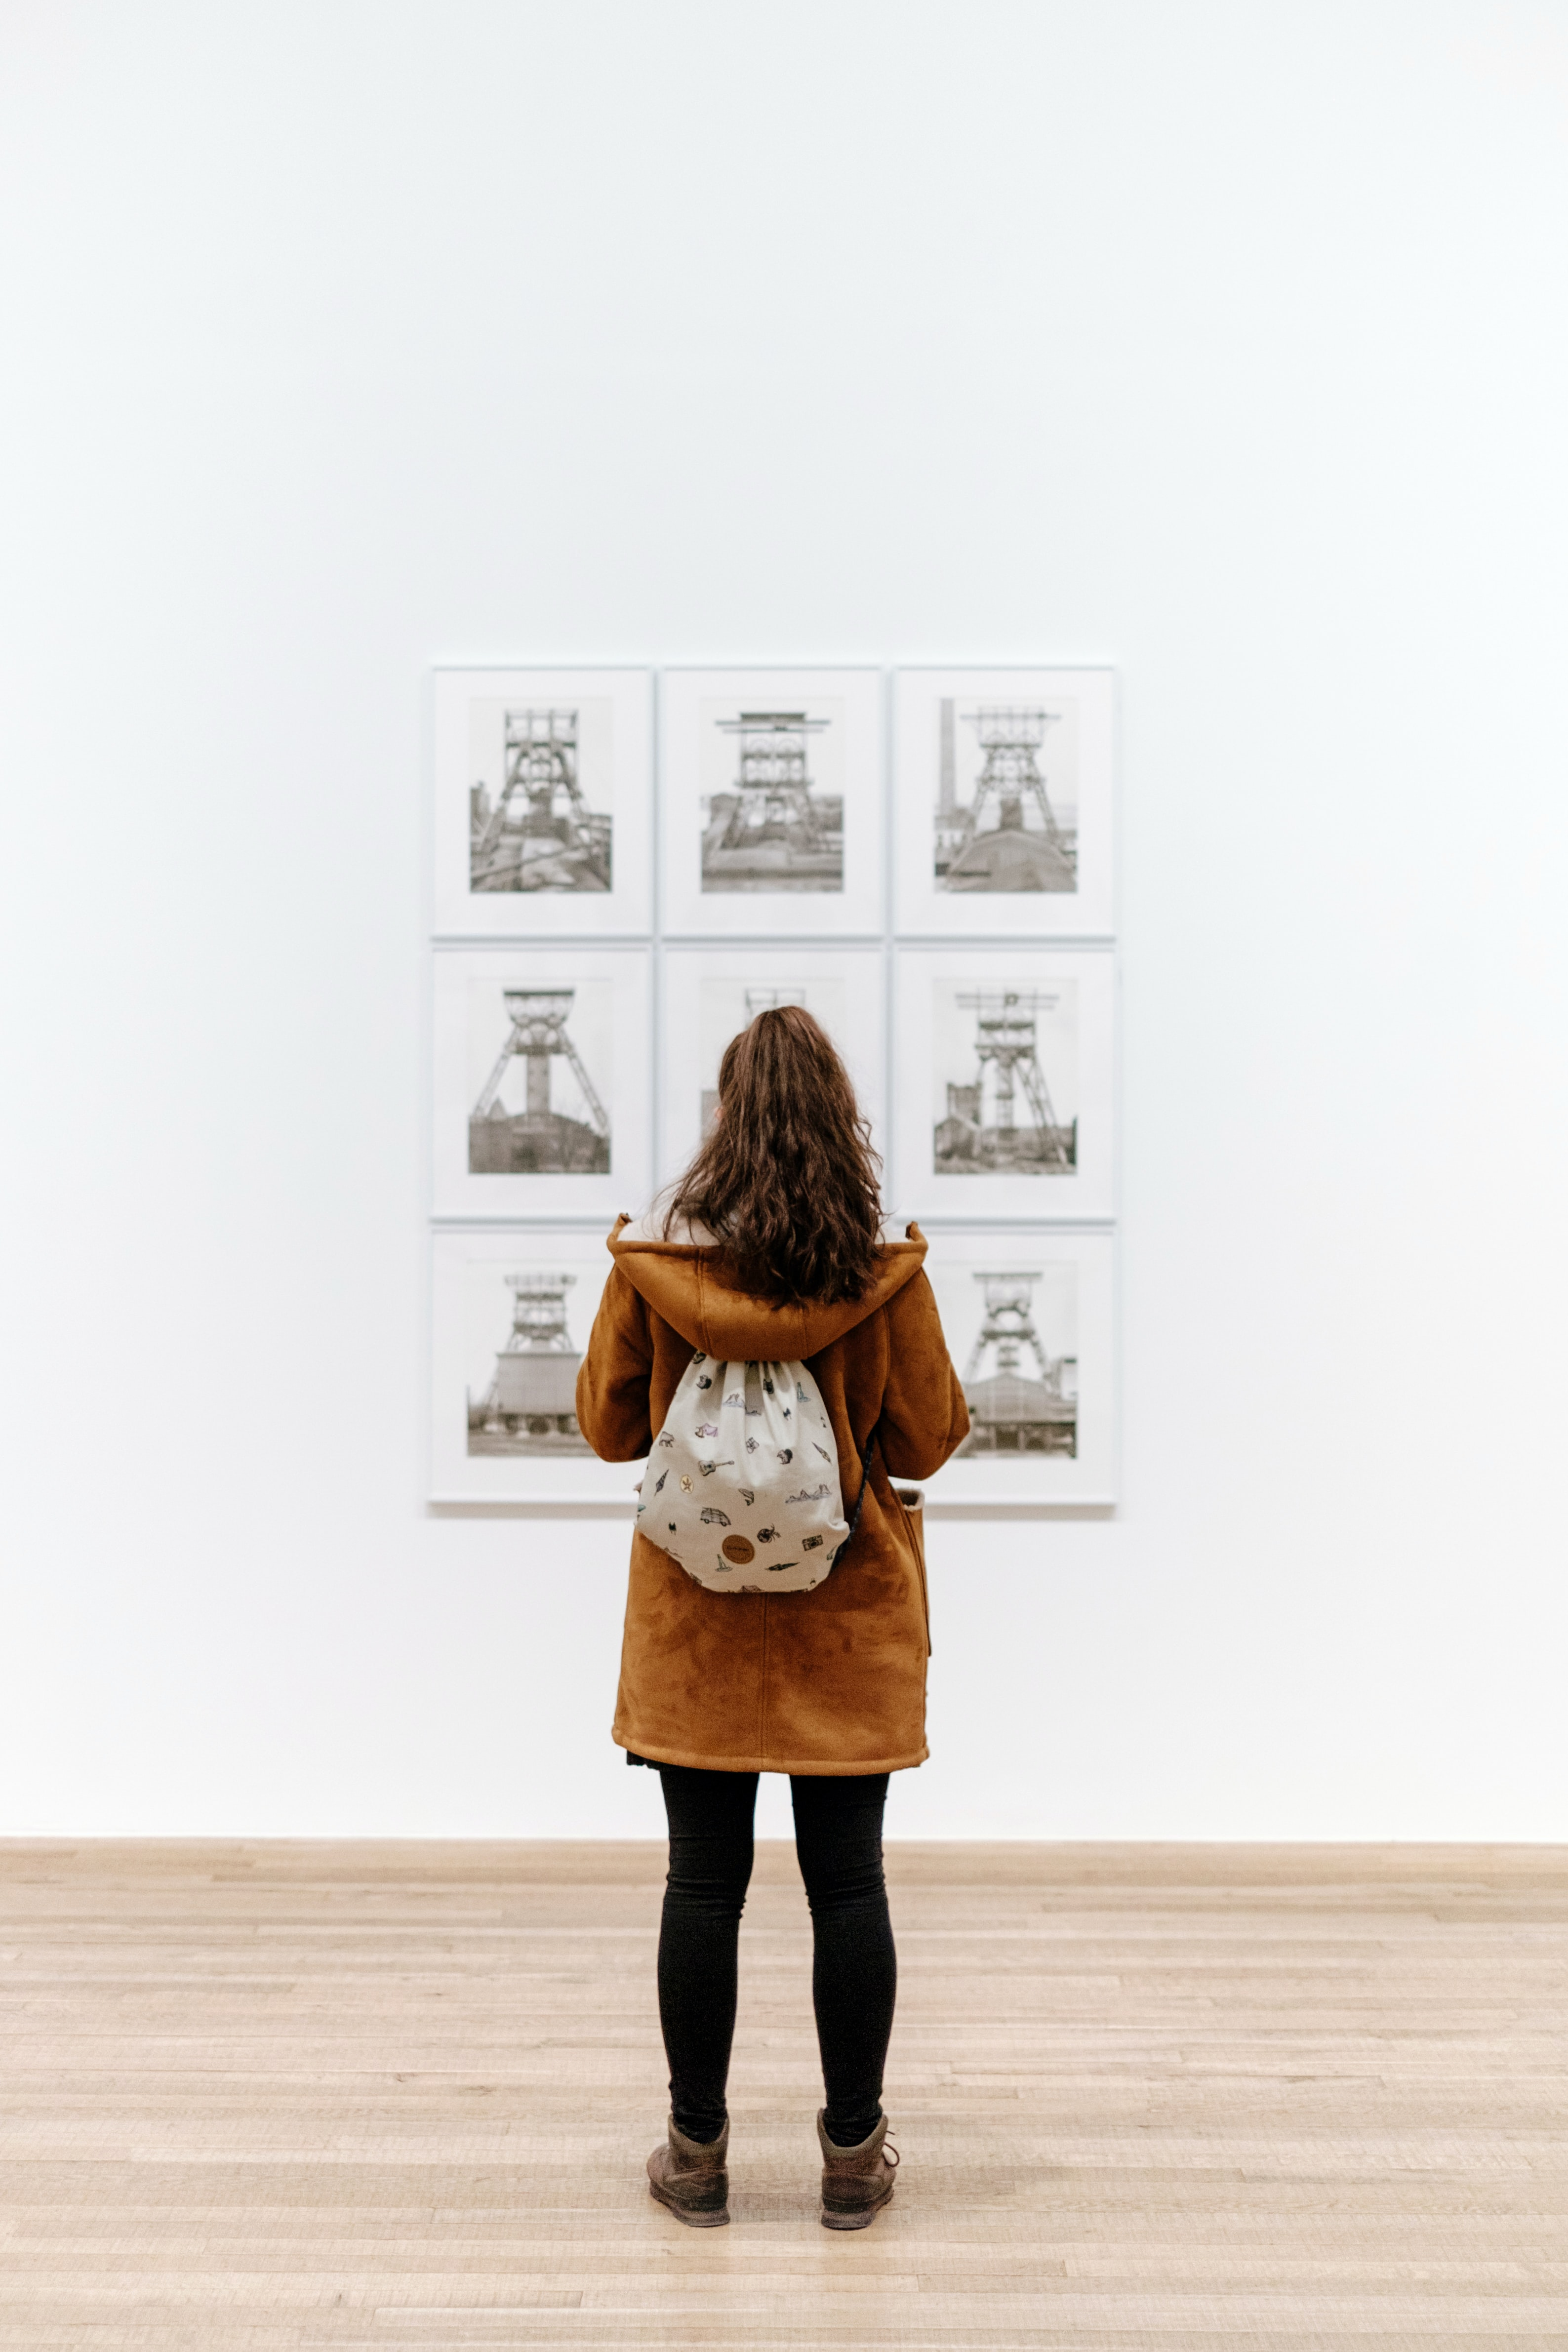 Young woman with brown hooded jacket and backpack view artwork on white background at Tate Modern